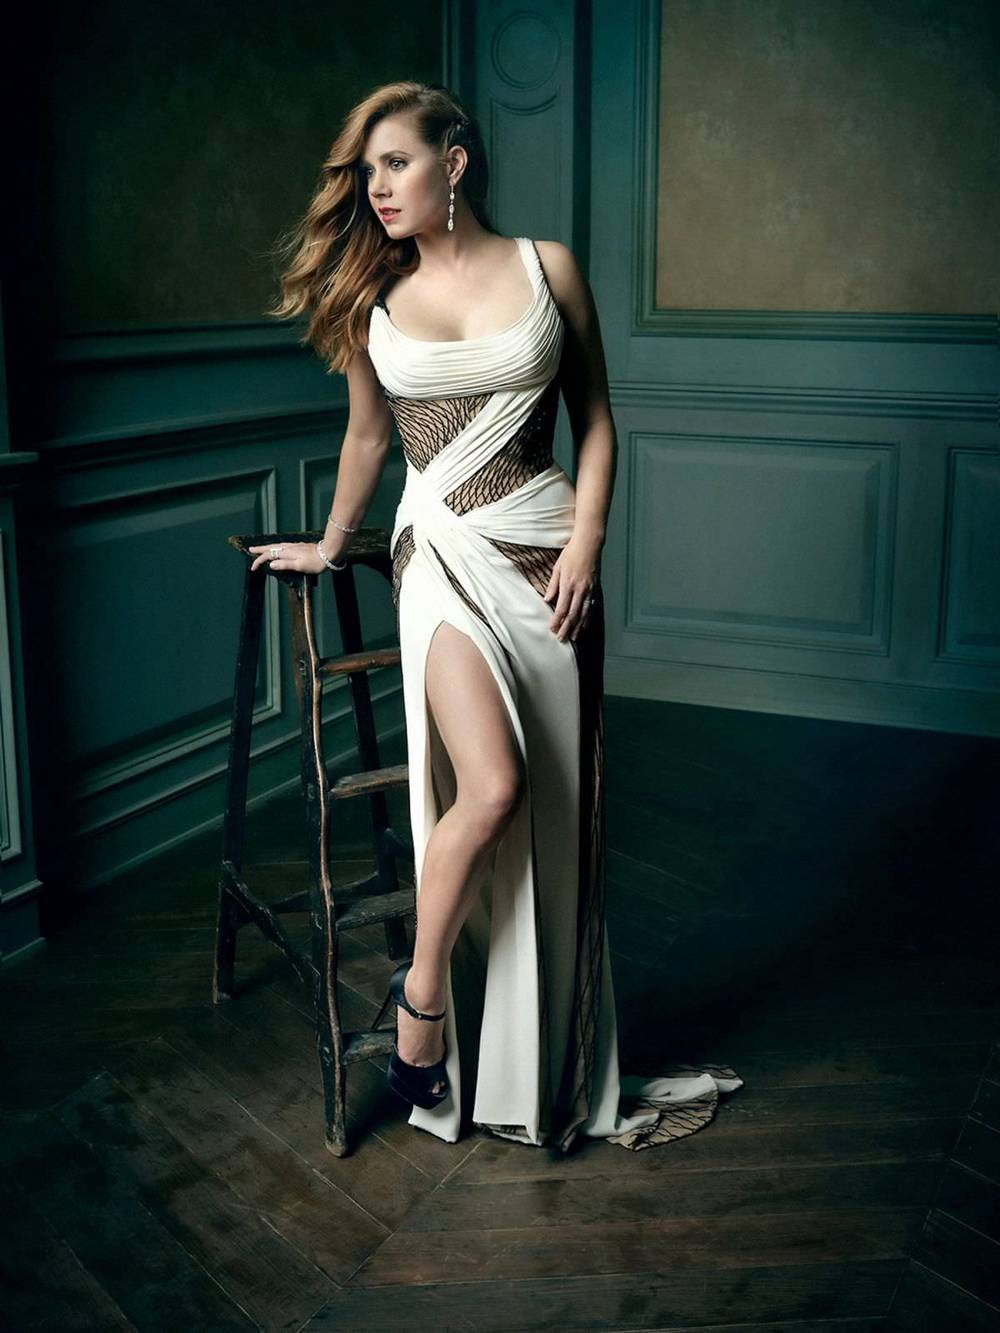 amy-adams-by-mark-seliger-2016-vanity-fair-oscar-party-portrait_1.jpg